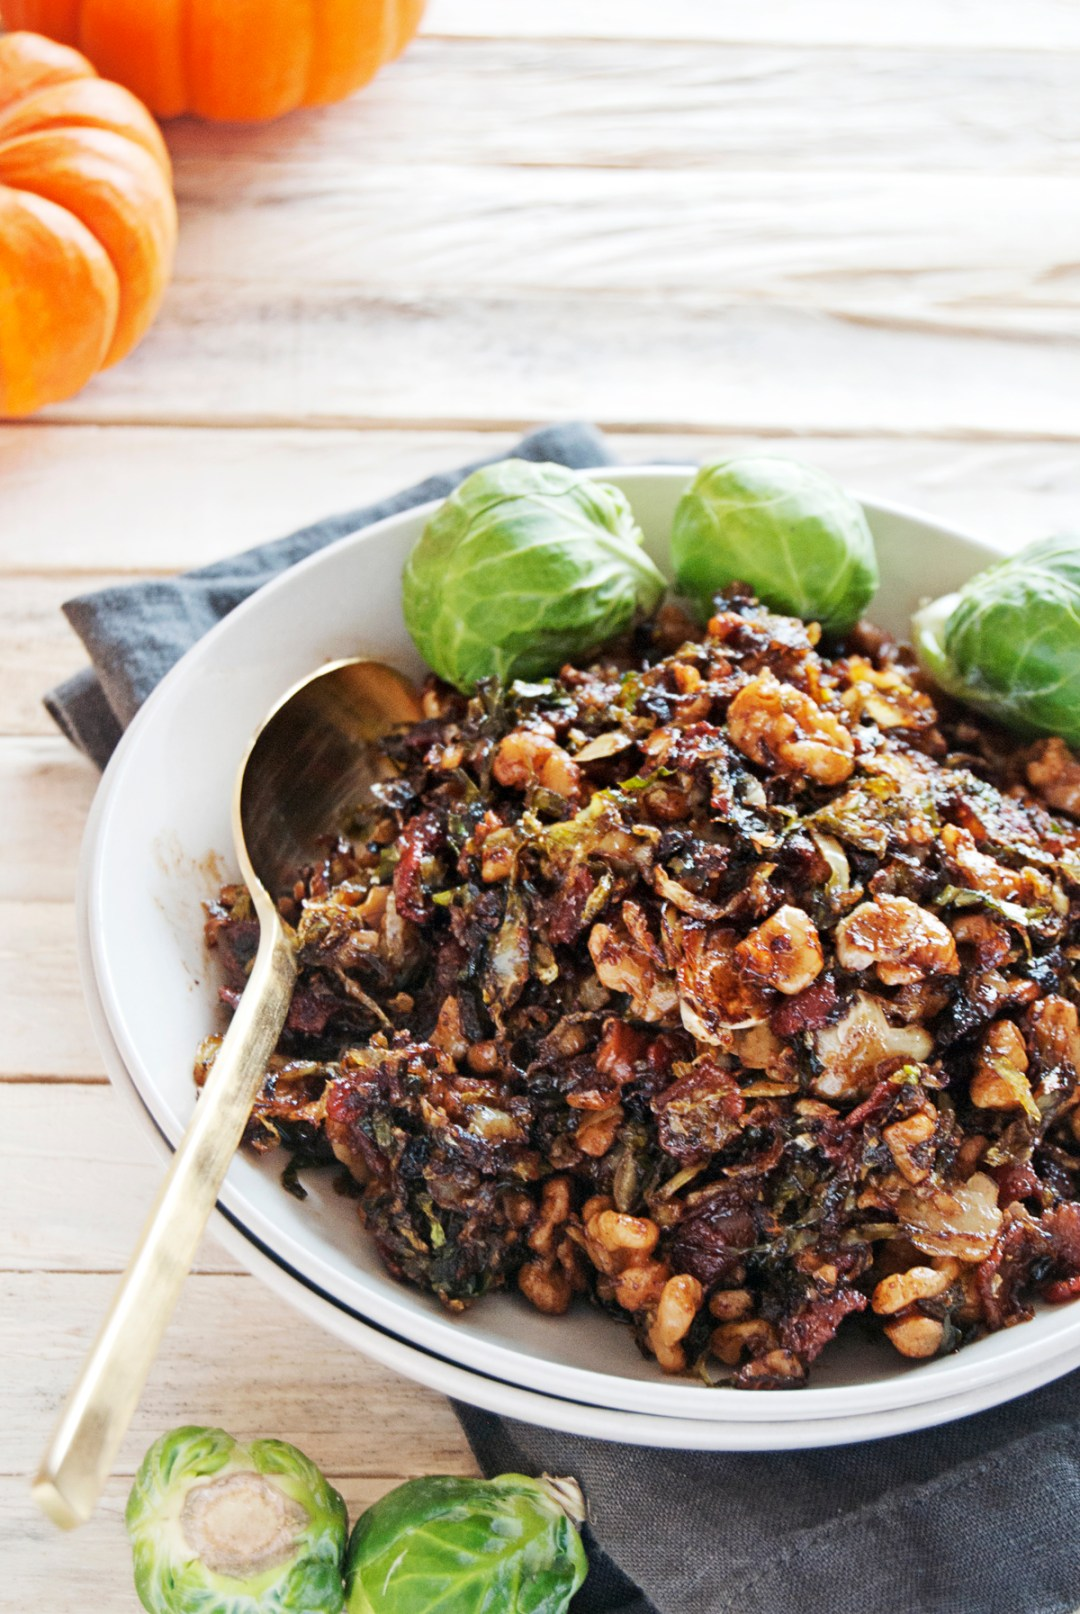 These shredded Brussel sprouts are the perfect flavor-filled side dish this fall, with bacon, walnuts, and balsamic.